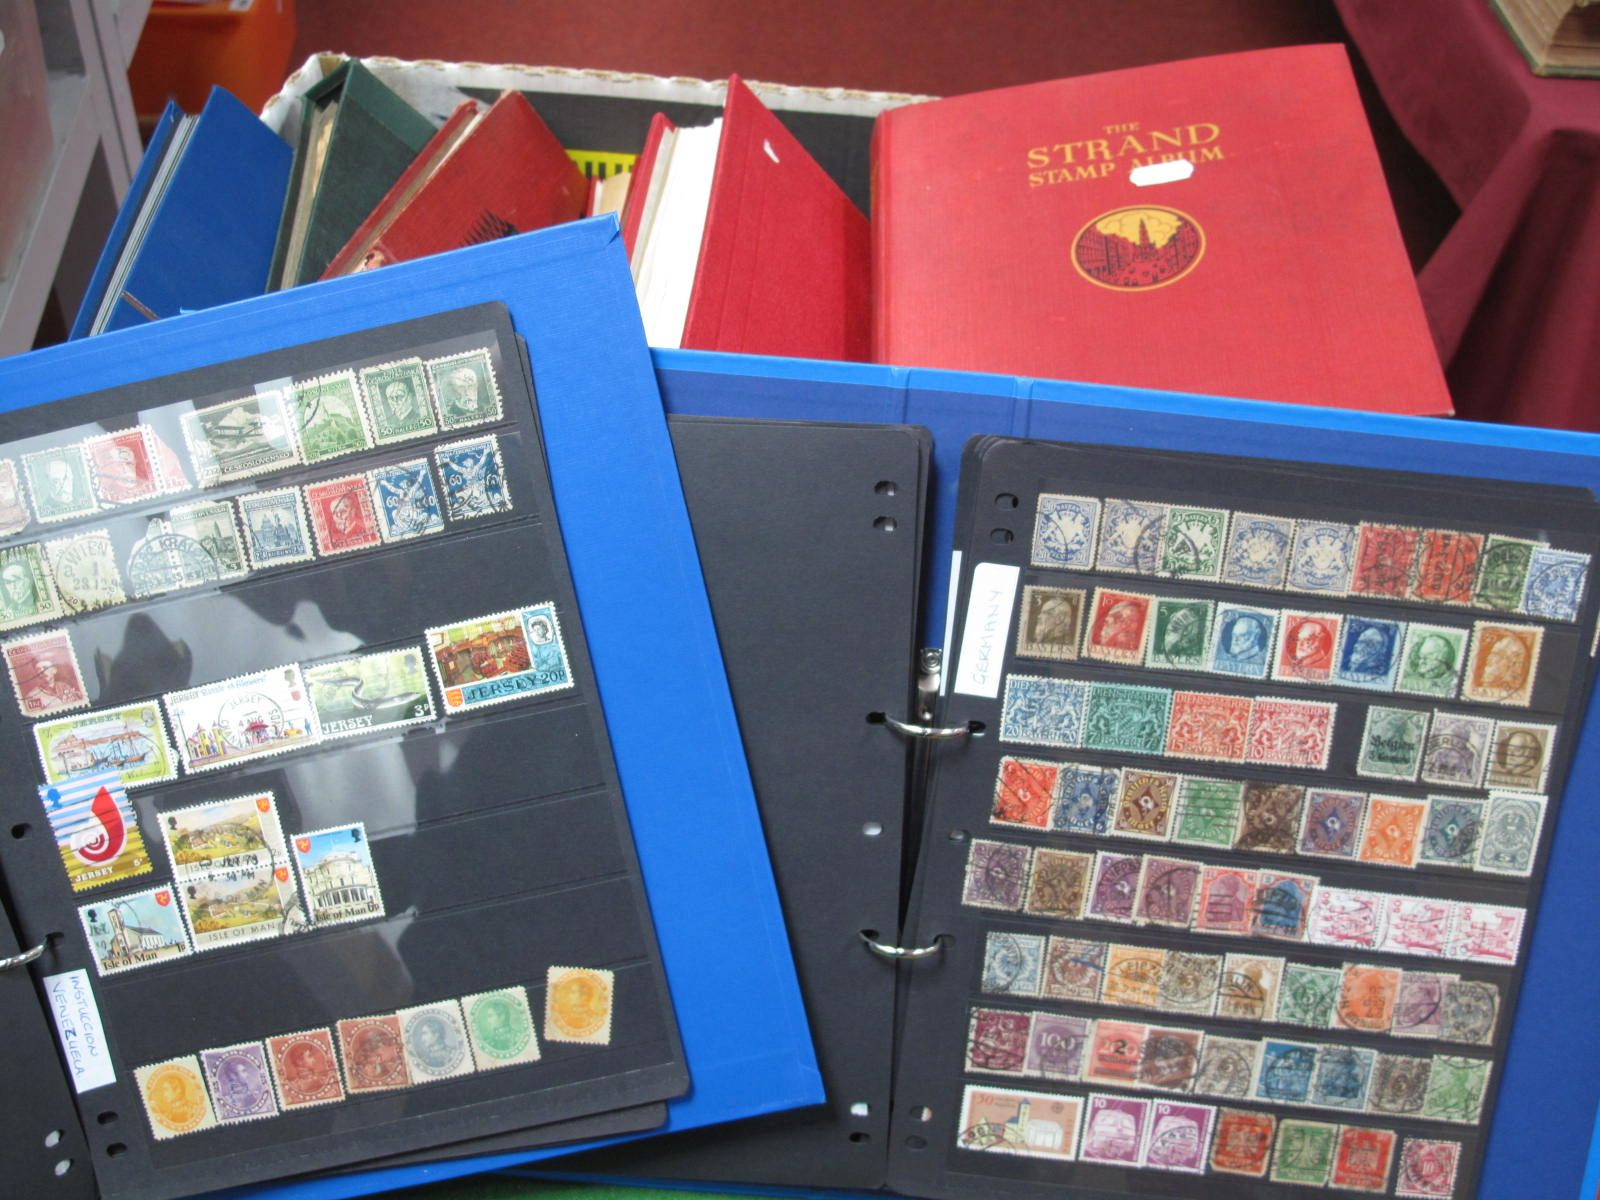 A Carton of Nine Junior Albums and Stockbook of World Stamps, most Countries represented including